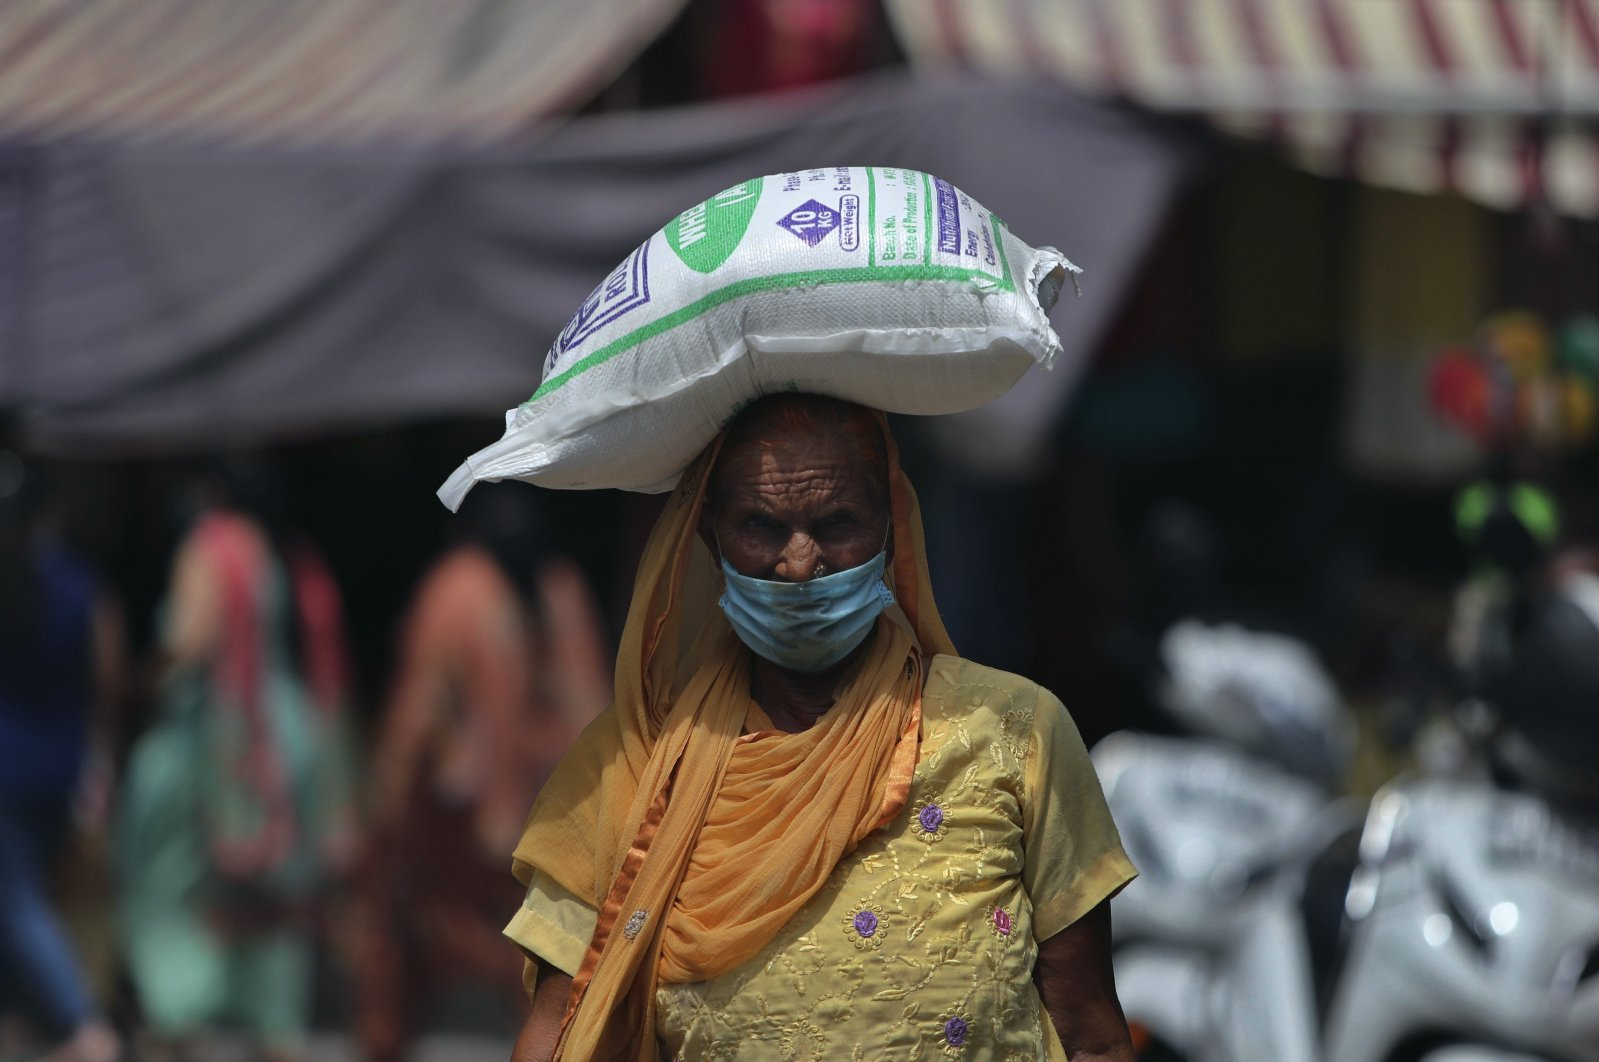 An Indian woman wearing face mask as a precaution against the coronavirus walks carrying a bag of flour on her head  in Jammu, India, Thursday, Aug 6, 2020. (AP Photo)